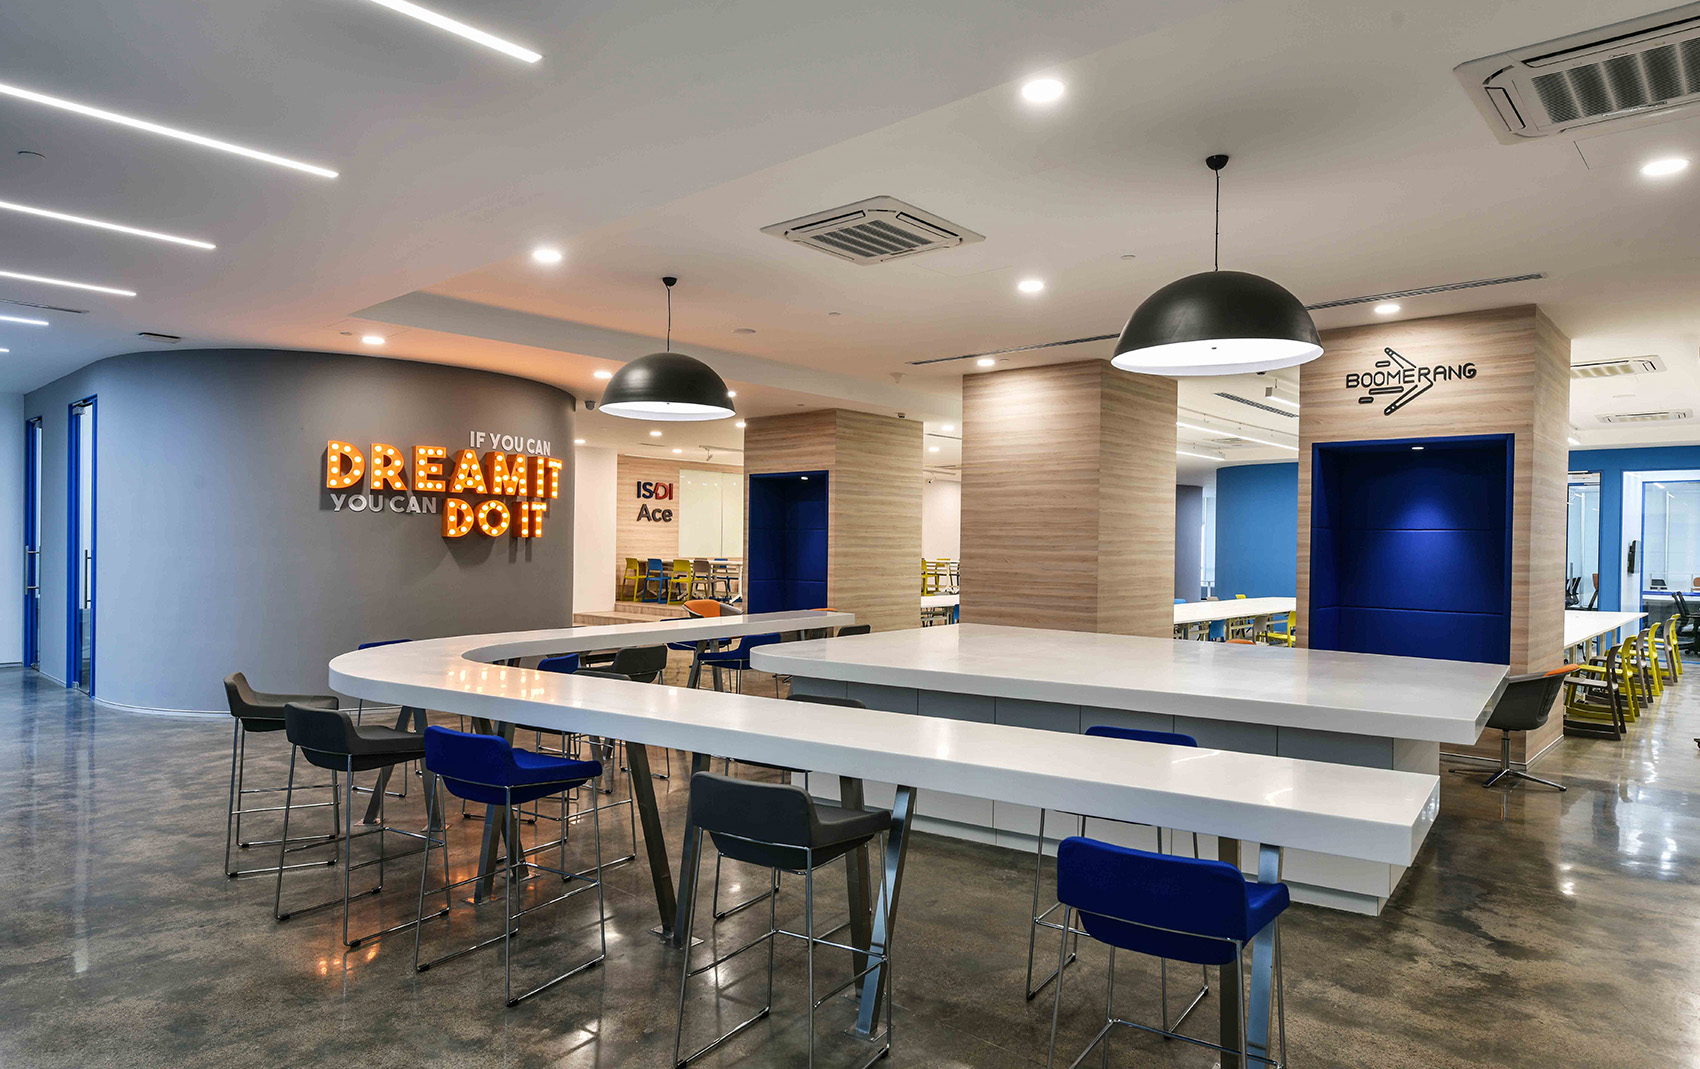 A Tour of ISDI Ace's Mumbai Coworking Space